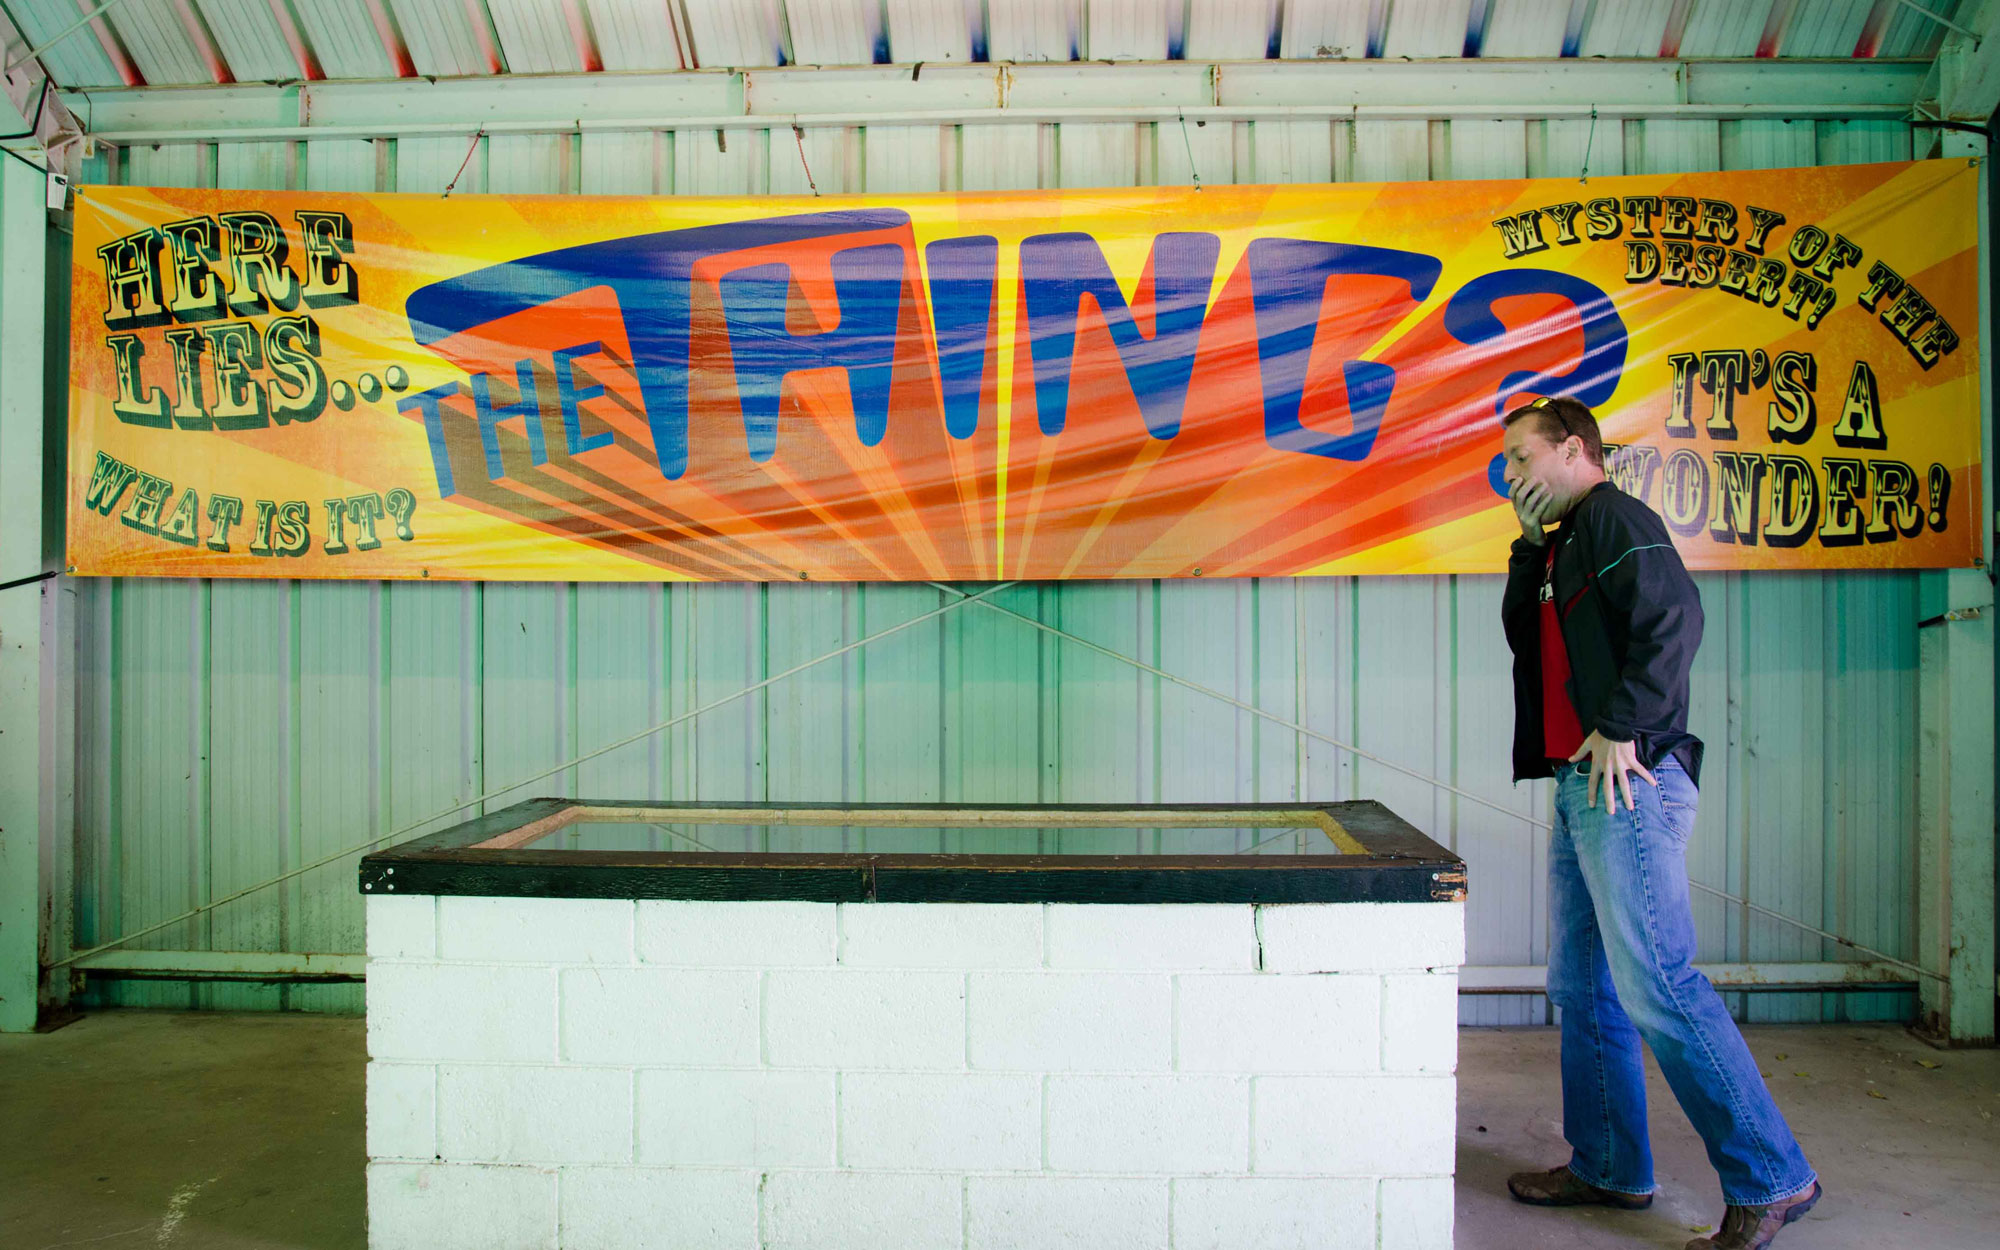 Weirdest Roadside Attractions: Arizona: The Thing